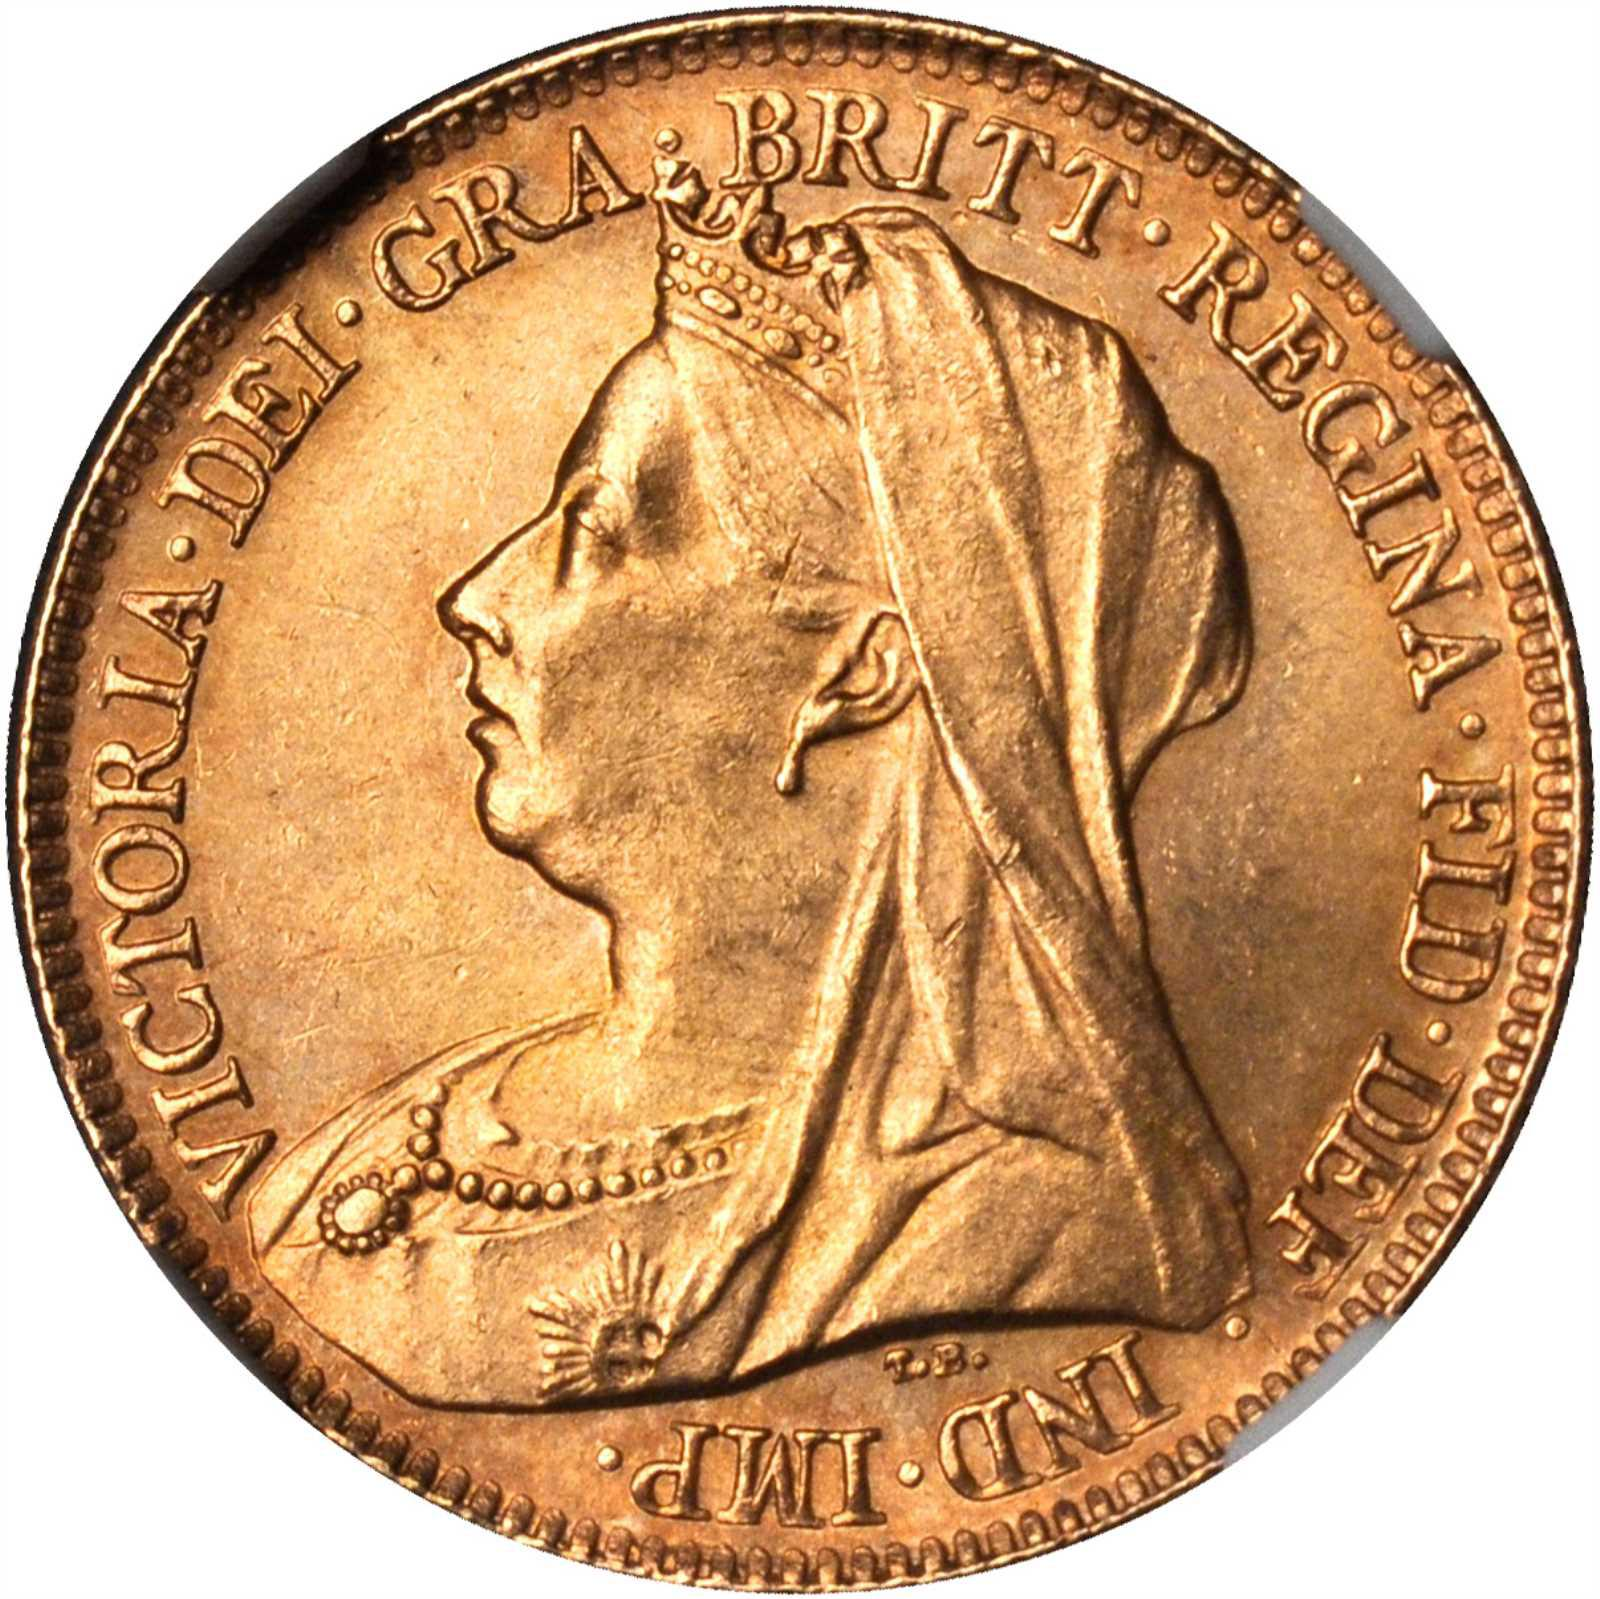 Half Sovereign (Pre-decimal, St George): Photo Great Britain 1896 1/2 sovereign